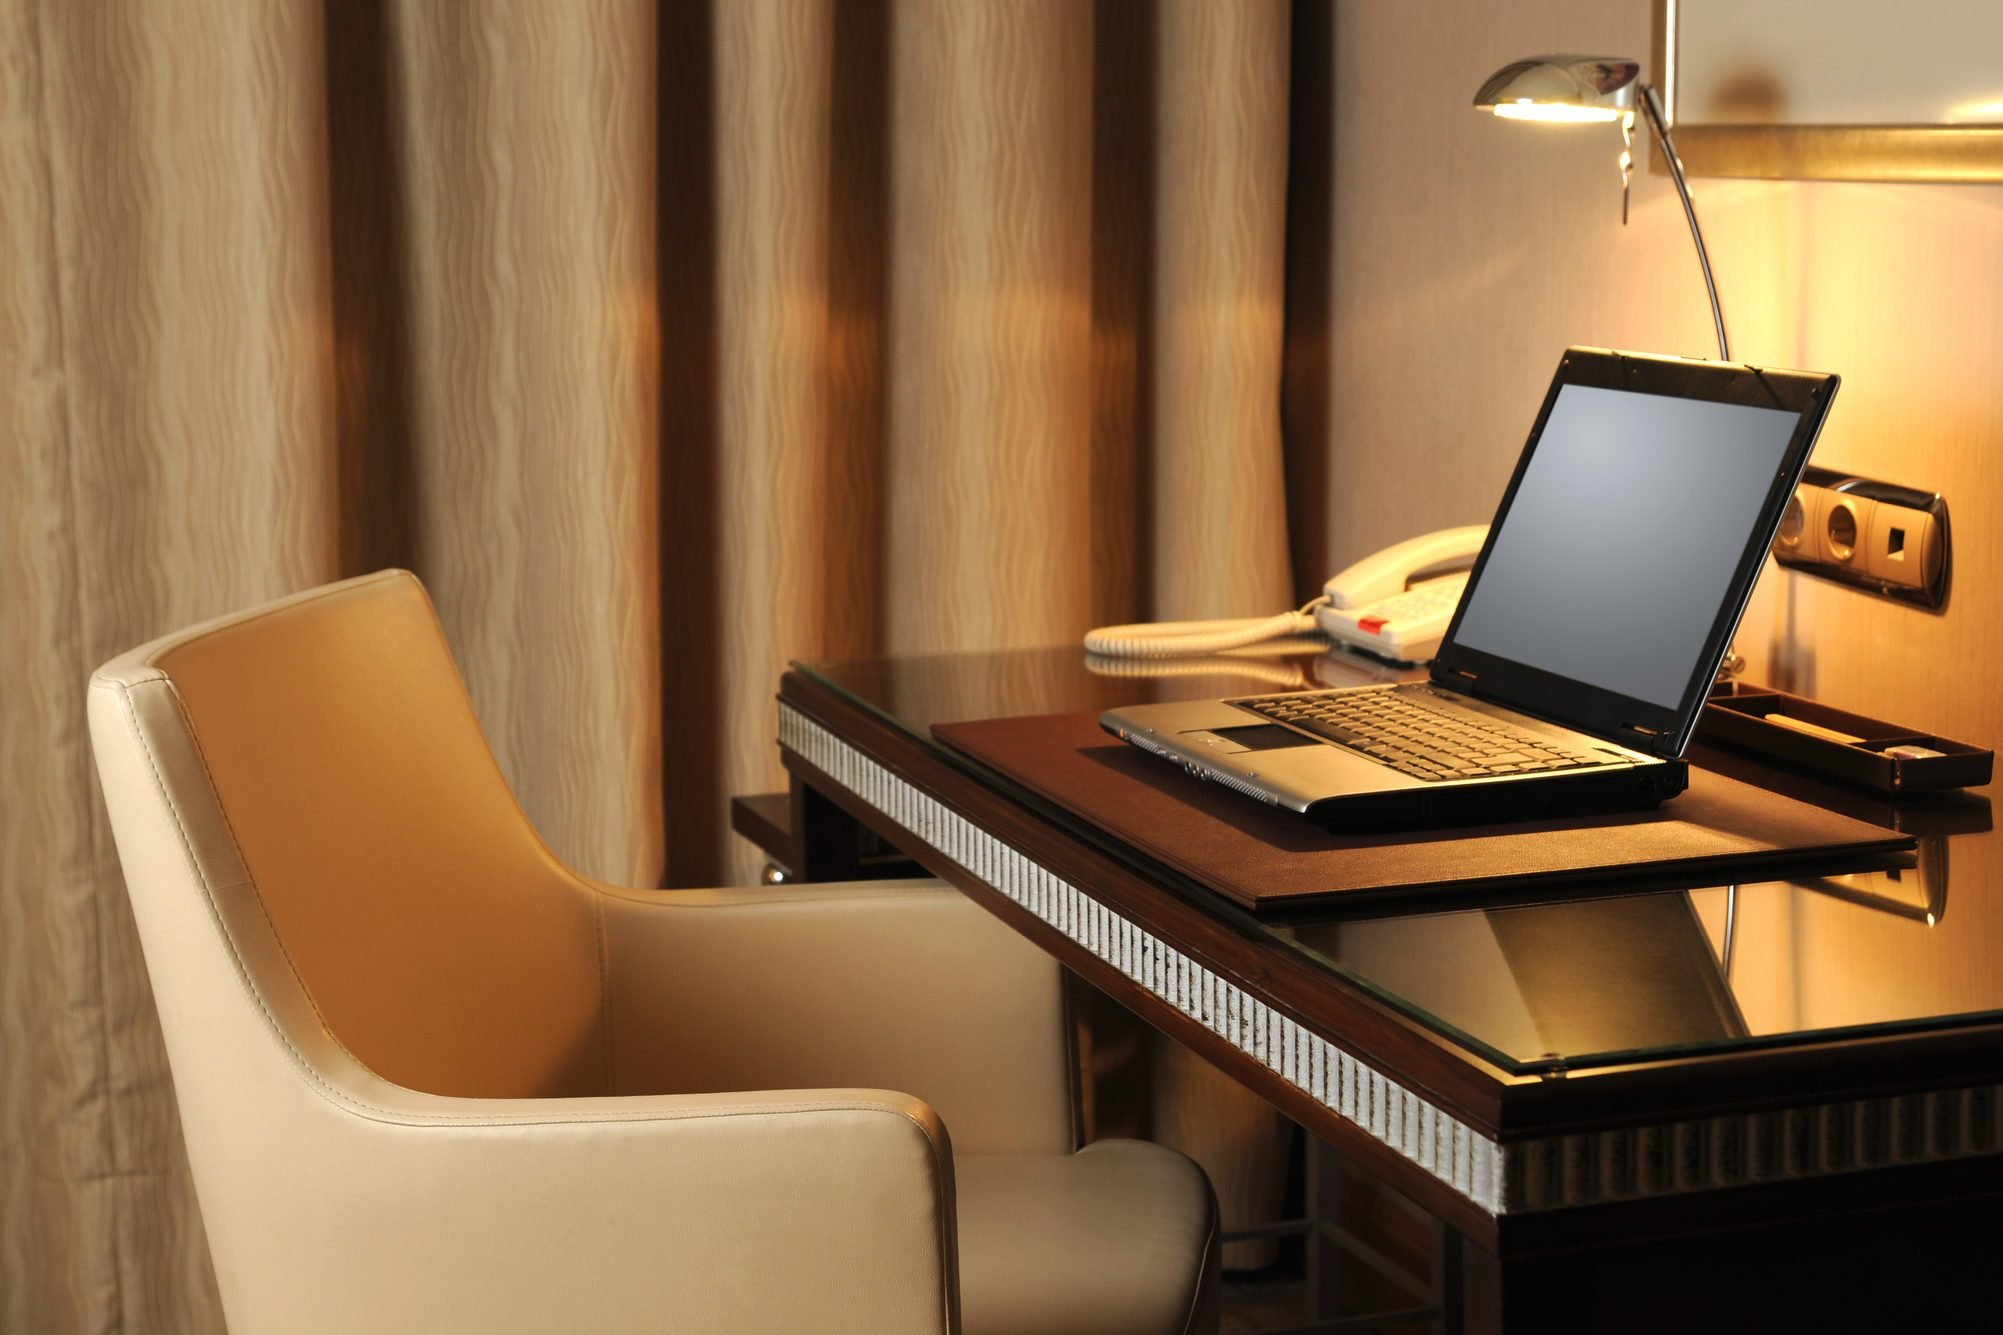 Internet Service in the Hotel Room